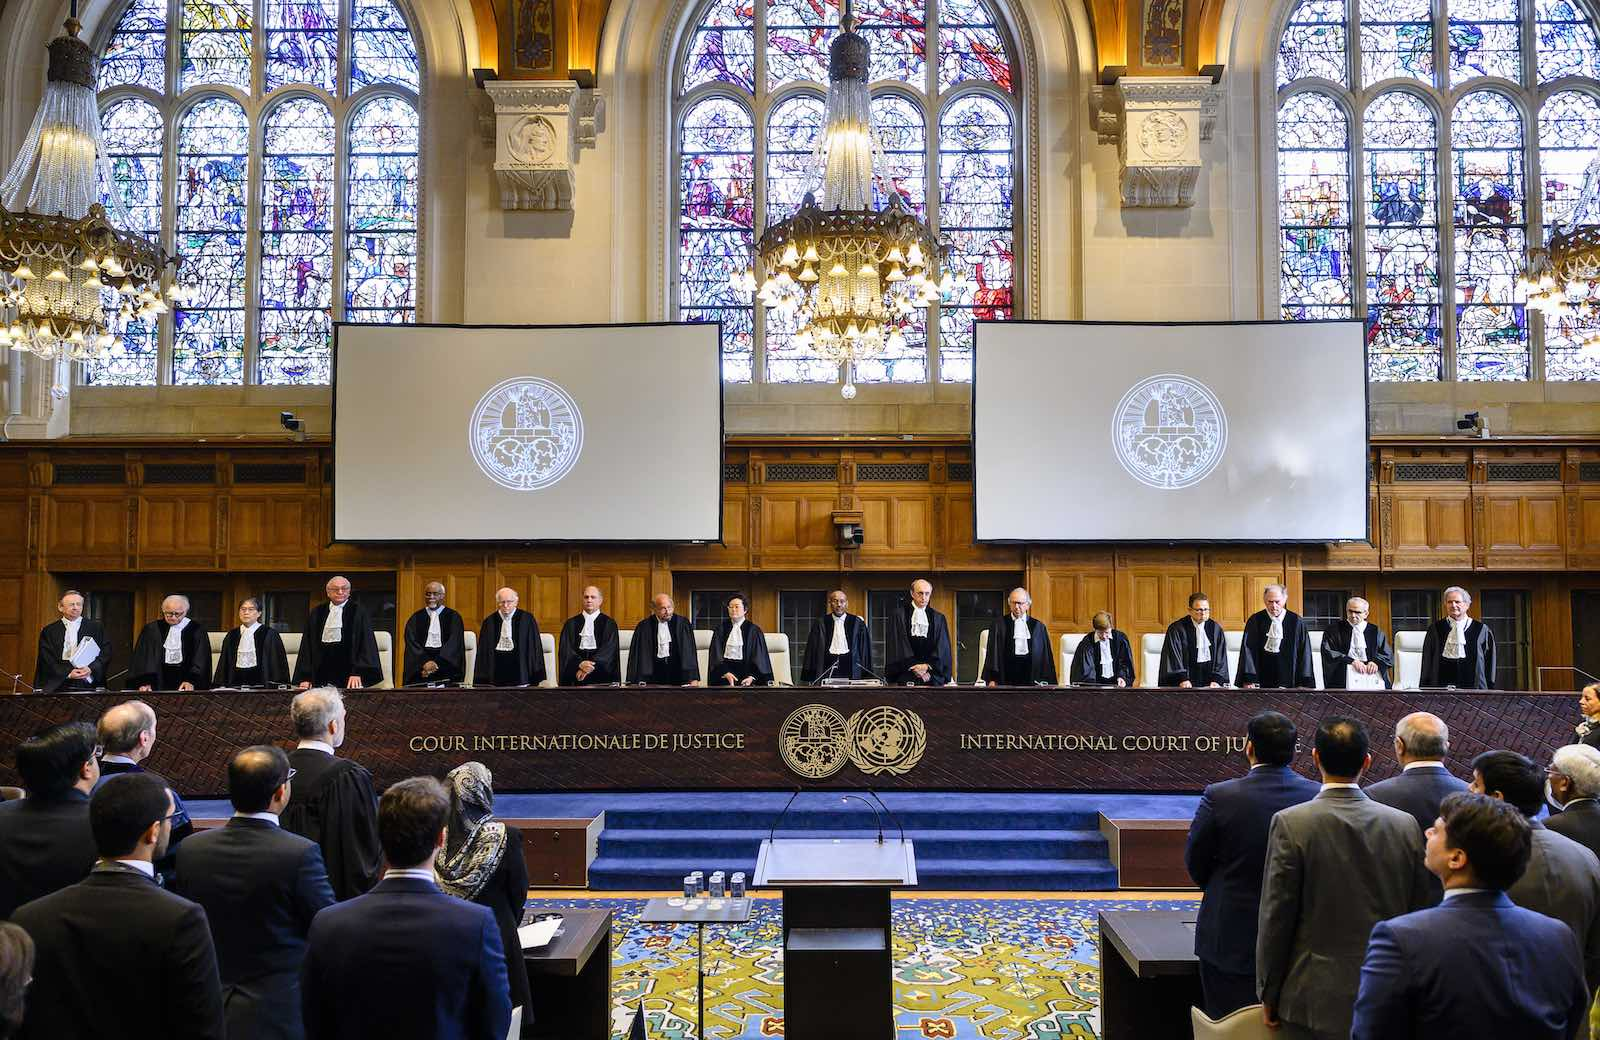 The International Court of Justice at The Hague during proceedings in May involving Qatar versus United Arab Emirates (Photo: Frank van Beek/United Nations)